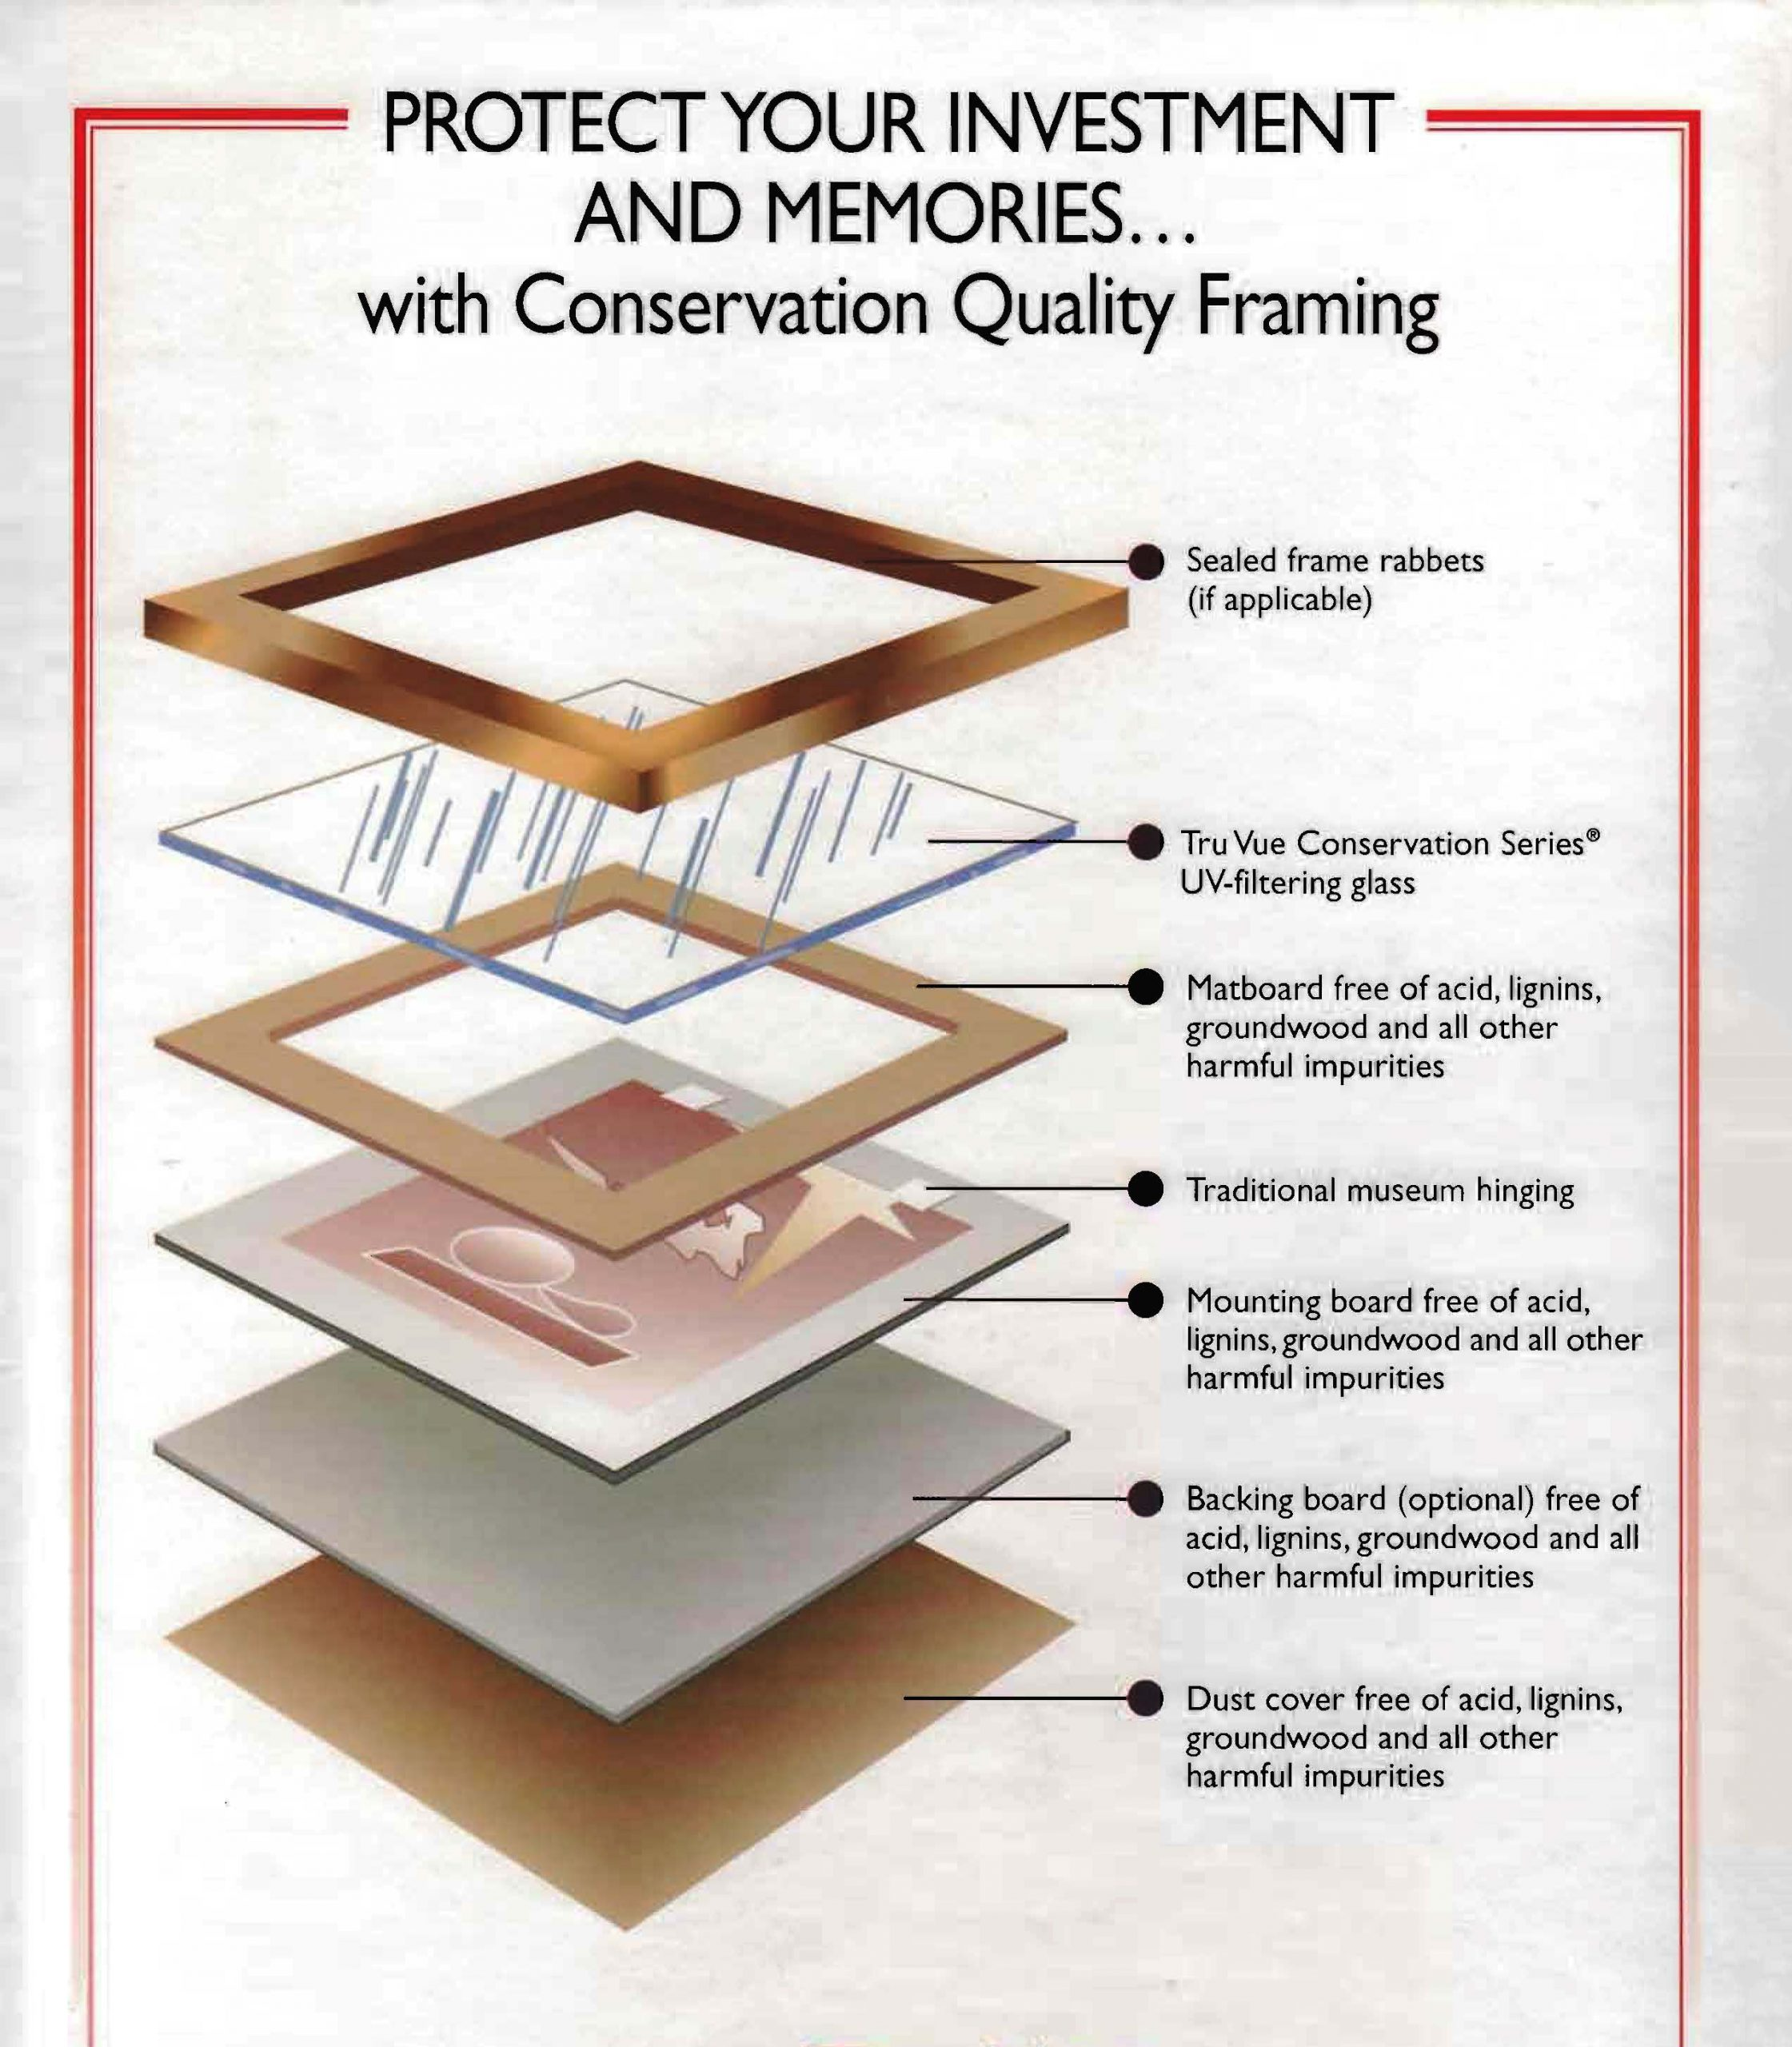 Materials for conservation quality framing